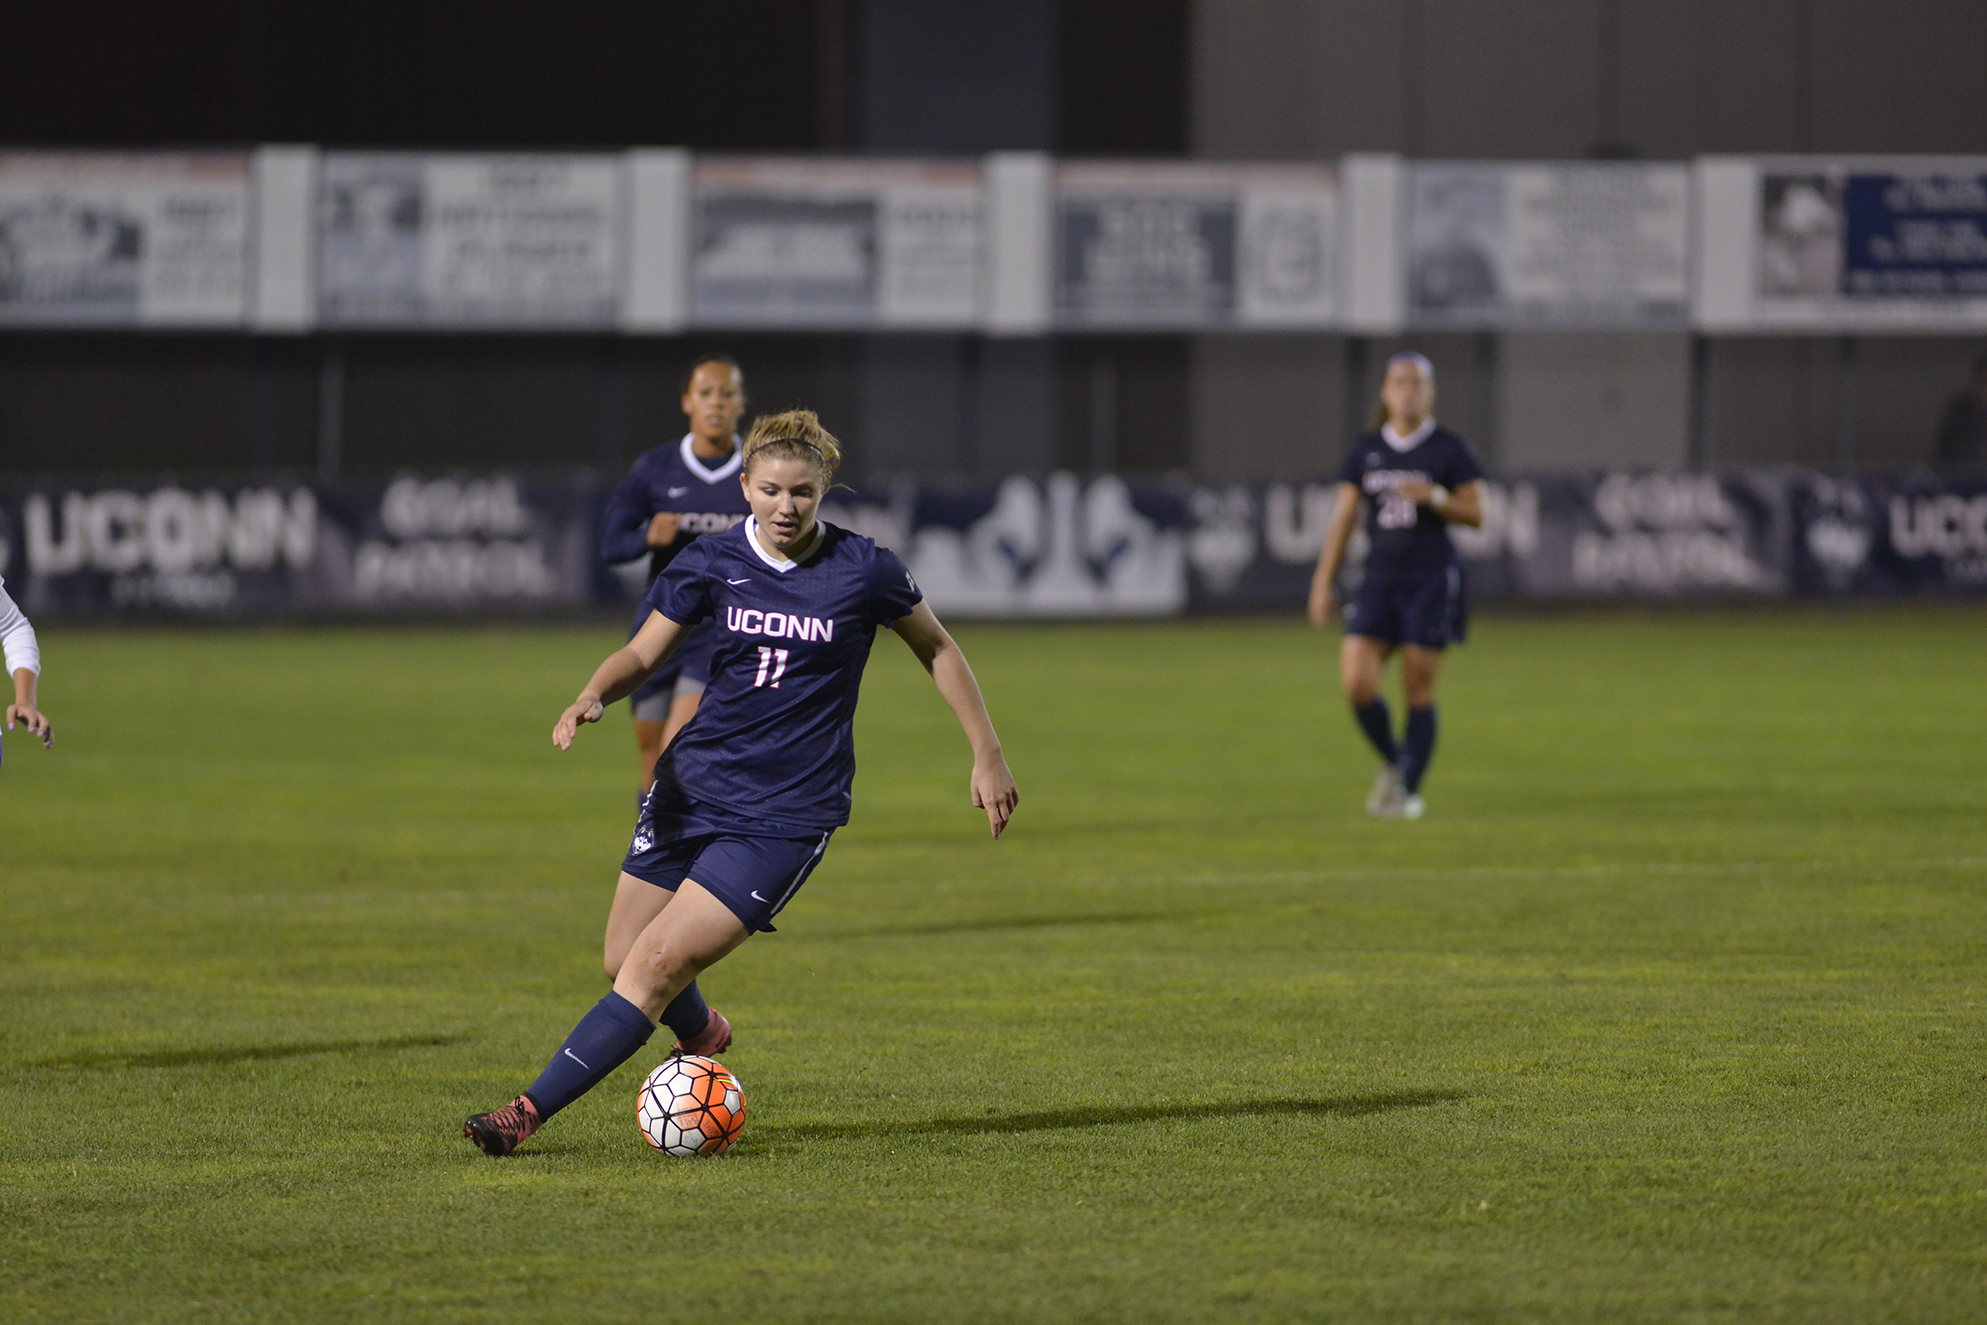 UConn freshman forward Kim Urbanek dribbles the ball during the Huskies' game against East Carolina at Joseph J. Morrone Stadium on Thursday, Oct. 8, 2015. The team is preparing for a rematch against the Pirates on Tuesday in the American Athletic Conference tournament quarterfinal round. (Jason Jiang/The Daily Campus)